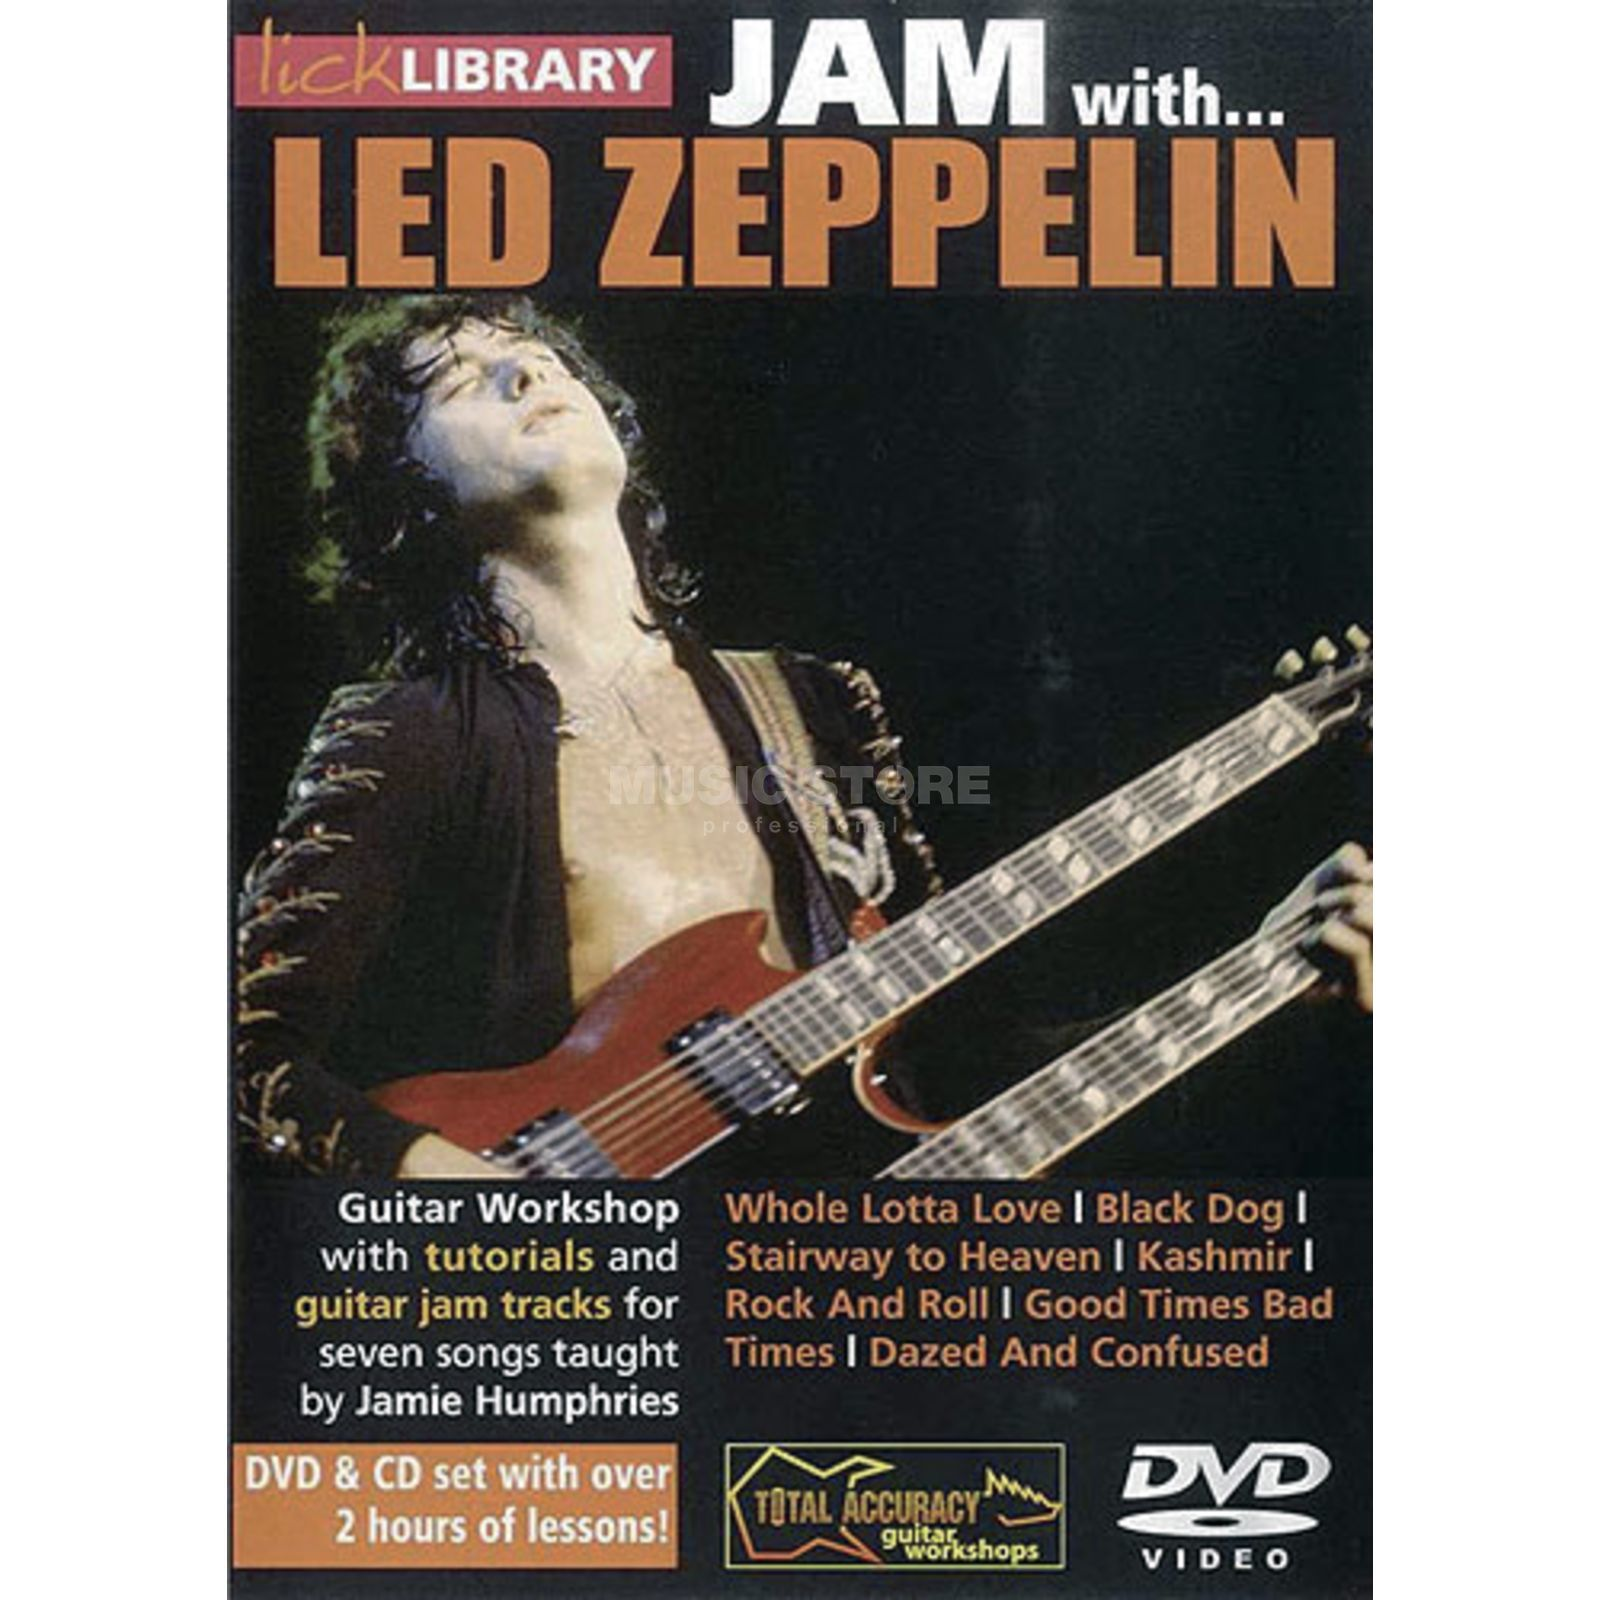 Roadrock International Lick Library: Jam With Led Zeppelin DVD, CD Product Image